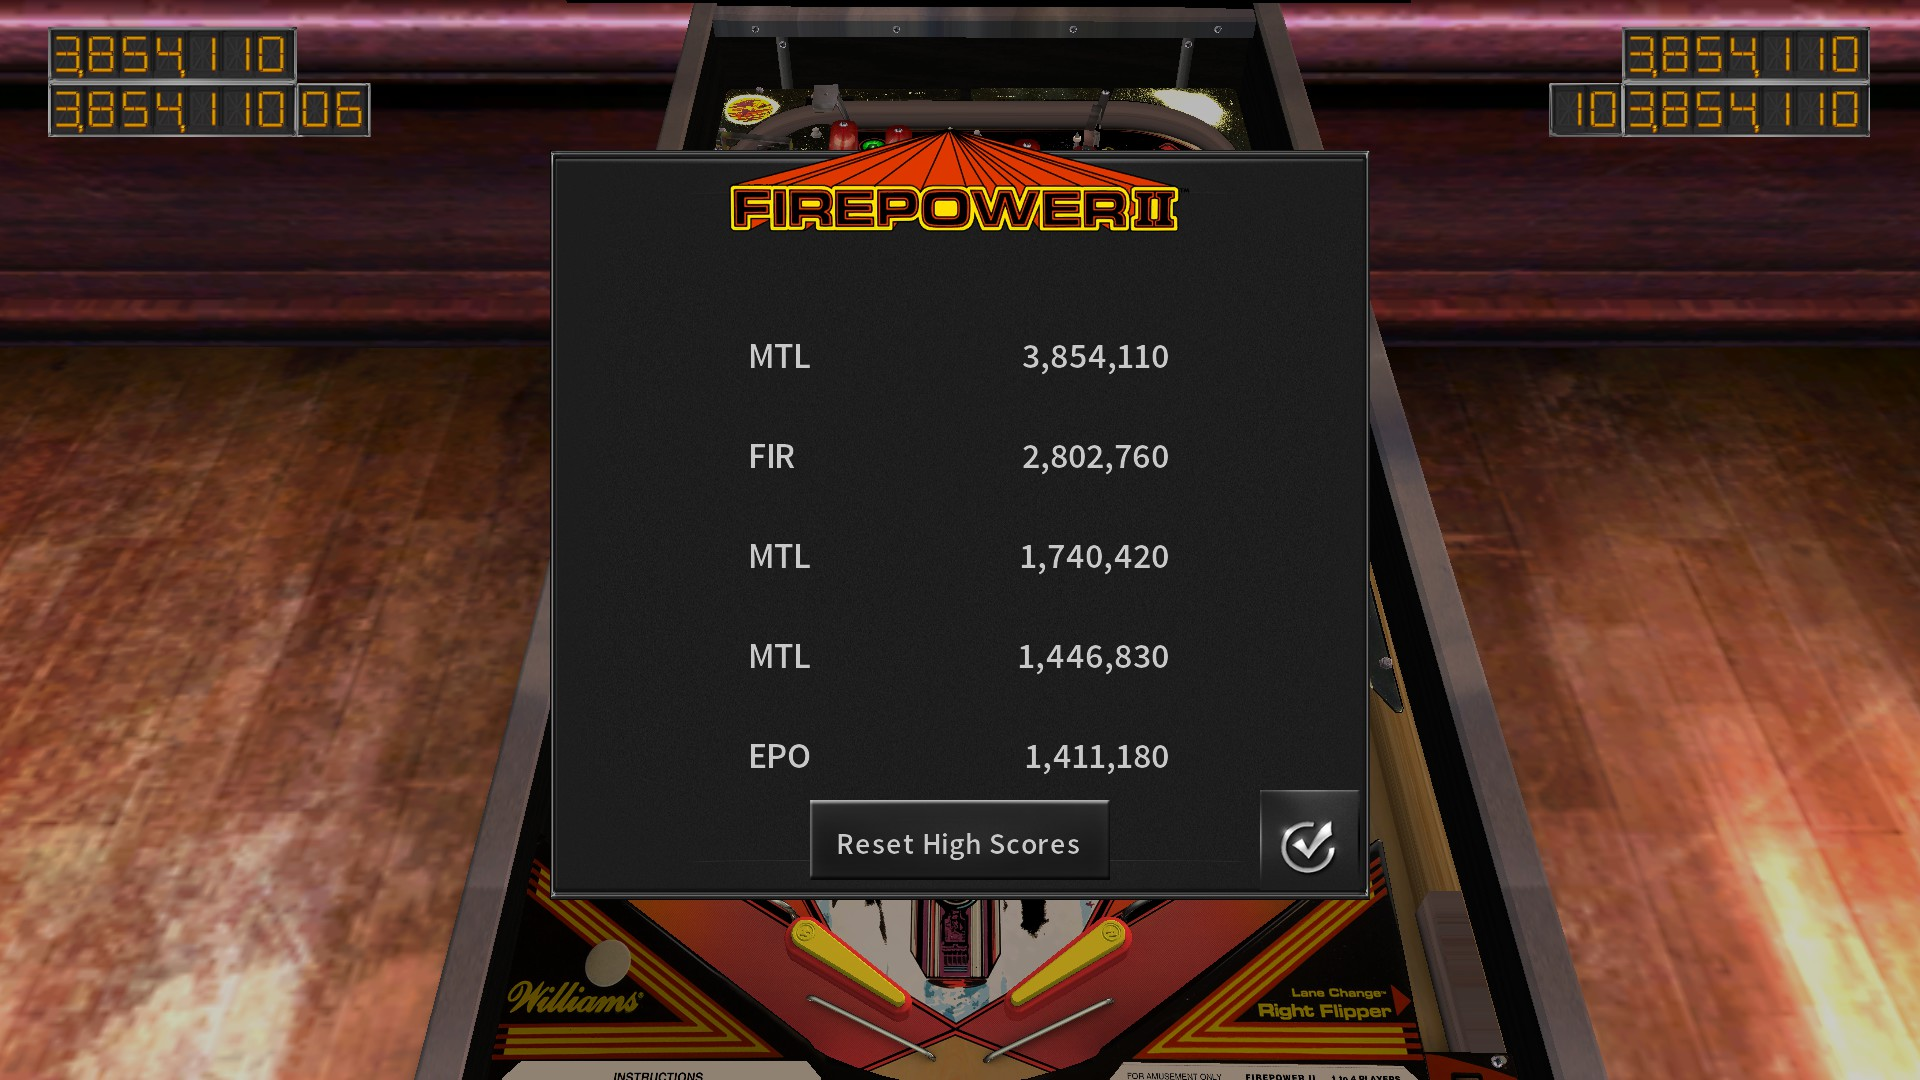 Pinball Arcade: Firepower II 3,854,110 points